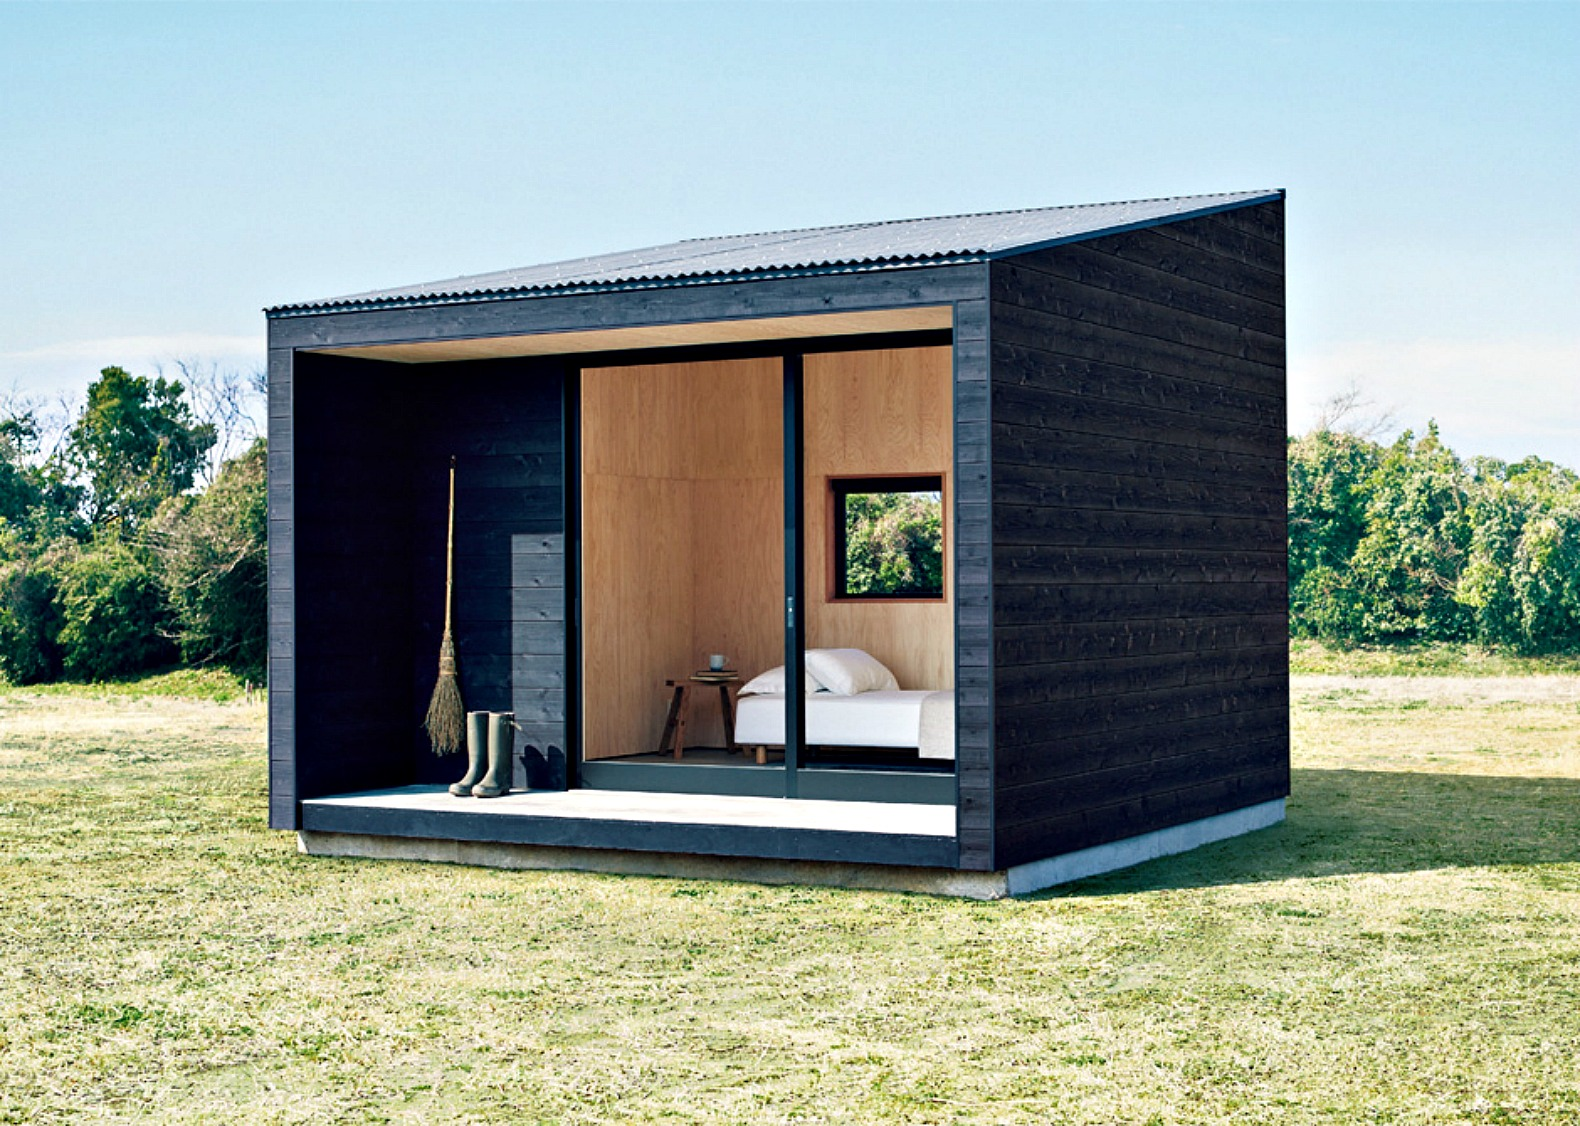 Muji to sell eagerly awaited k minimalist tiny homes